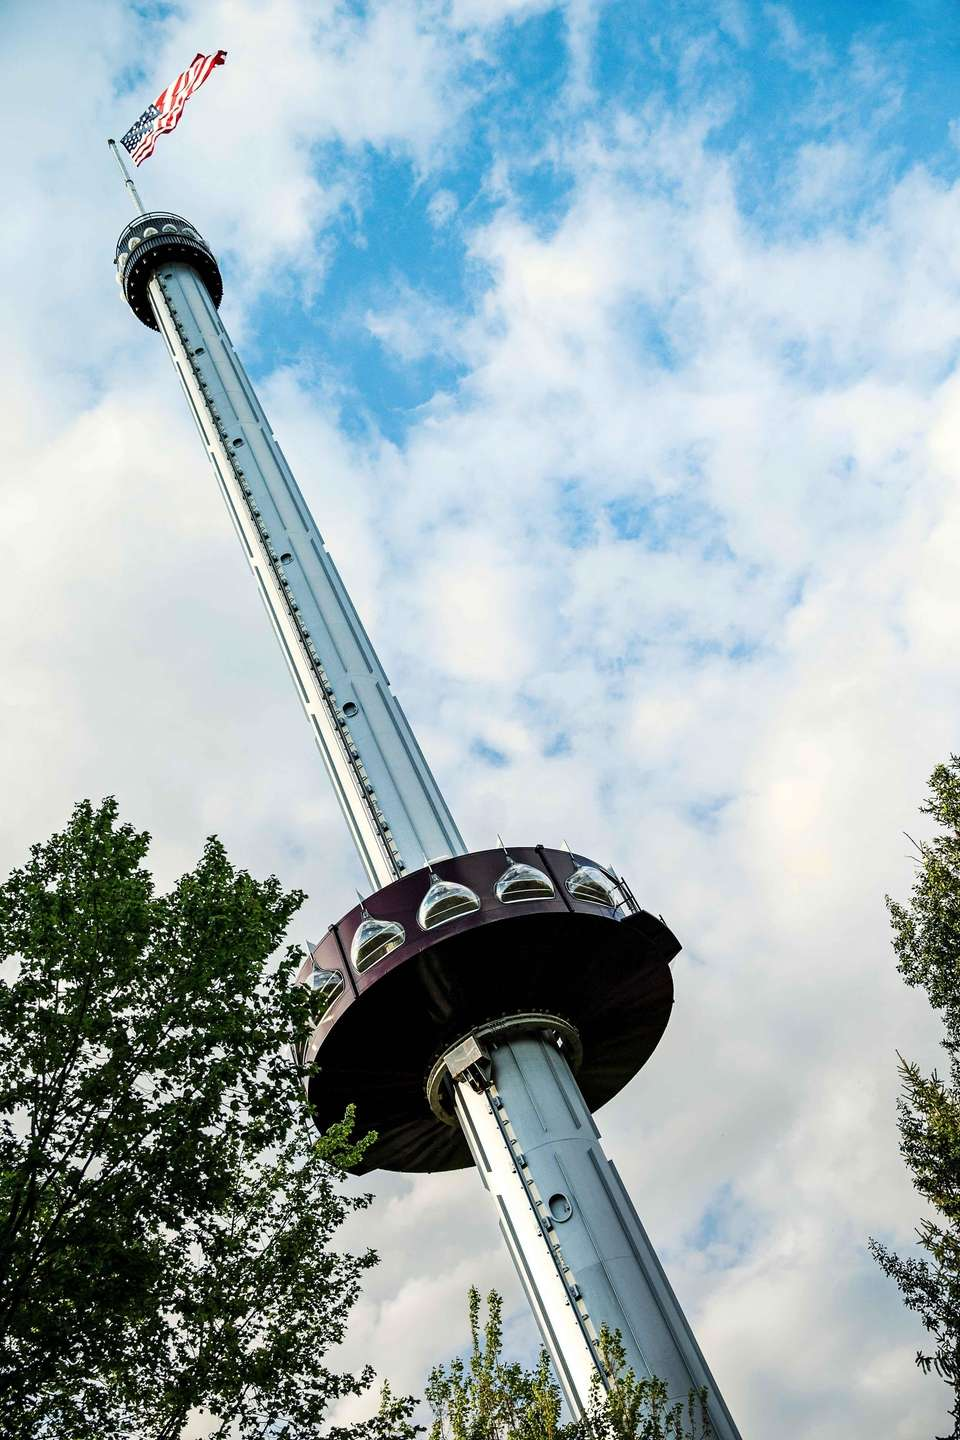 The Kissing Tower ride features kiss-shaped observation windows,